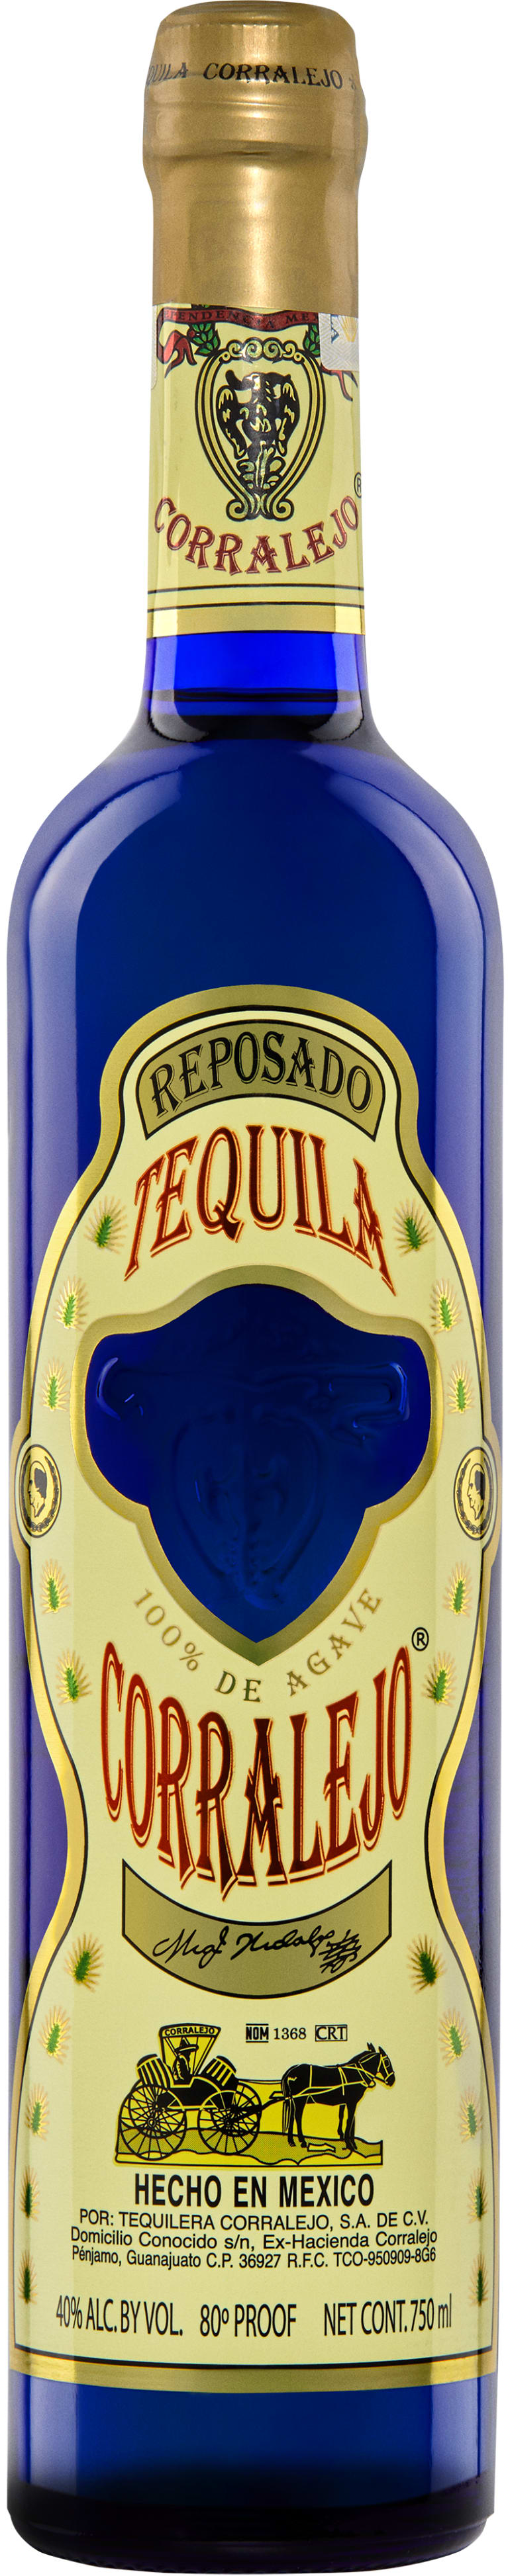 Corralejo Reposado Tequila  Front Bottle Shot